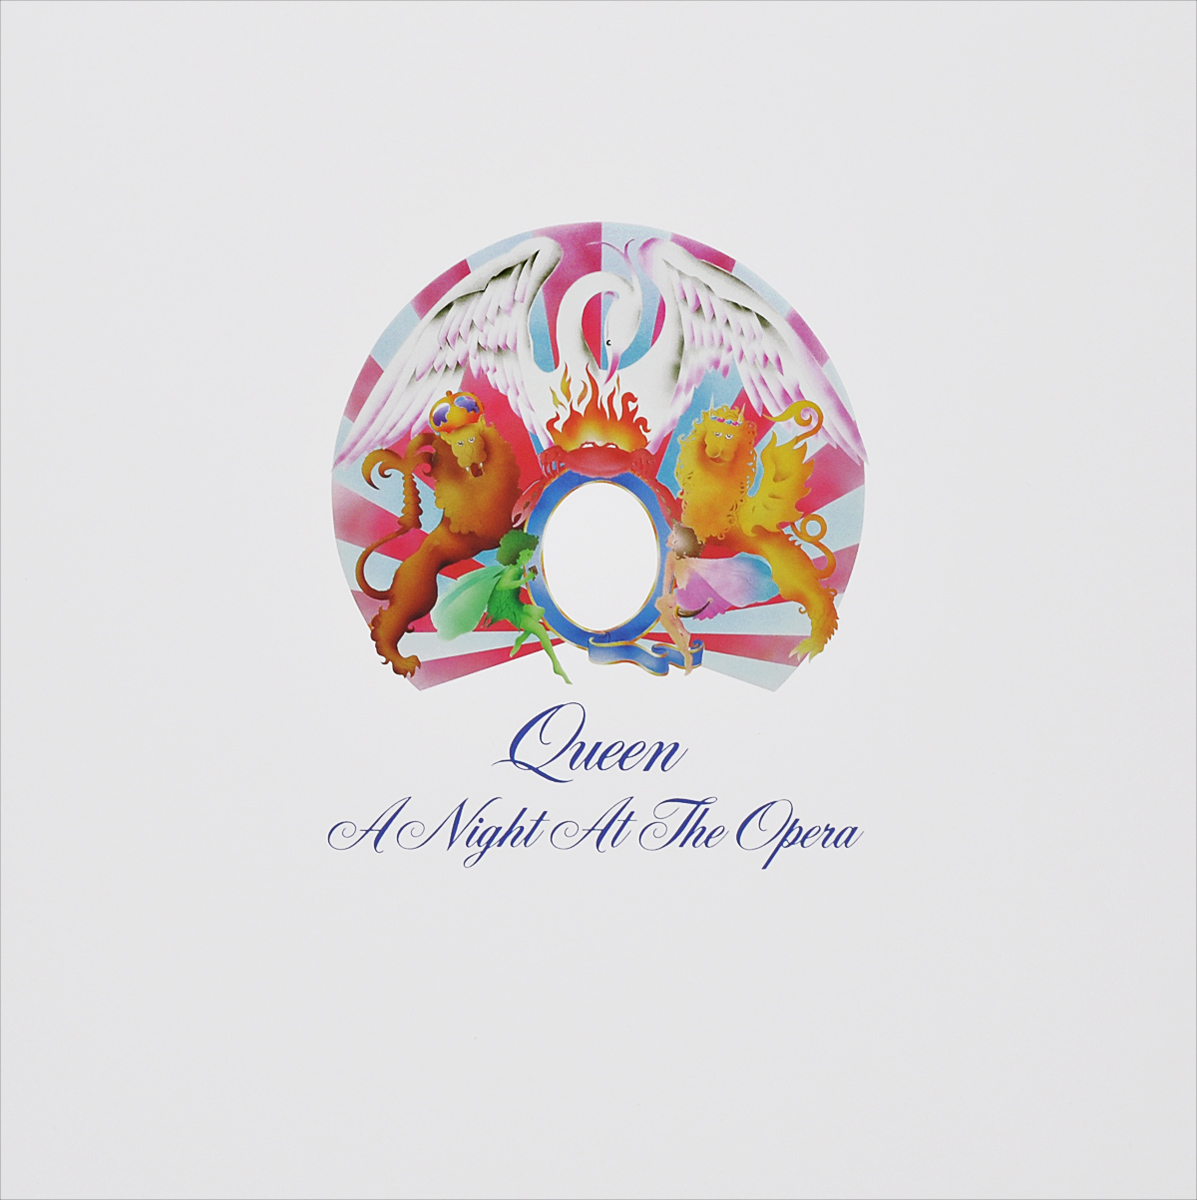 Queen Queen. A Night At The Opera (LP) queen queen a night at the odeon anniversary limited edition cd lp dvd blu ray